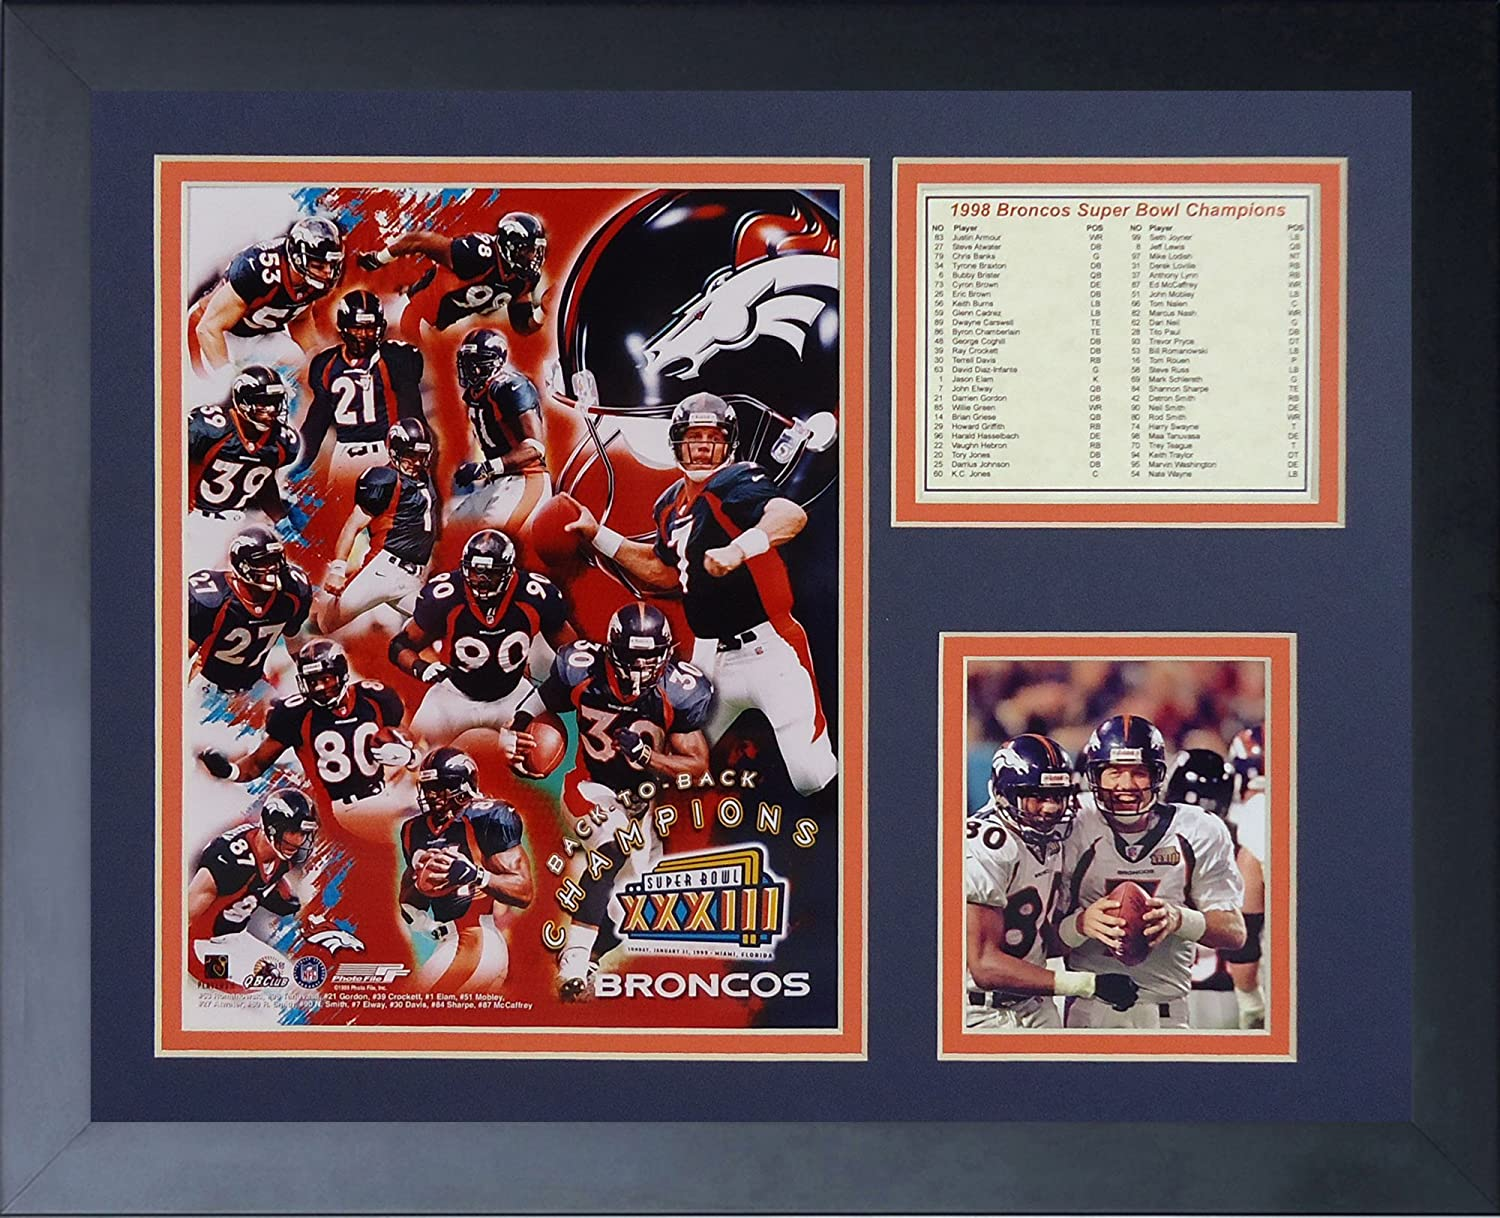 11 x 14-Inch Legends Never Die Peyton Manning Broncos White Framed Photo Collage